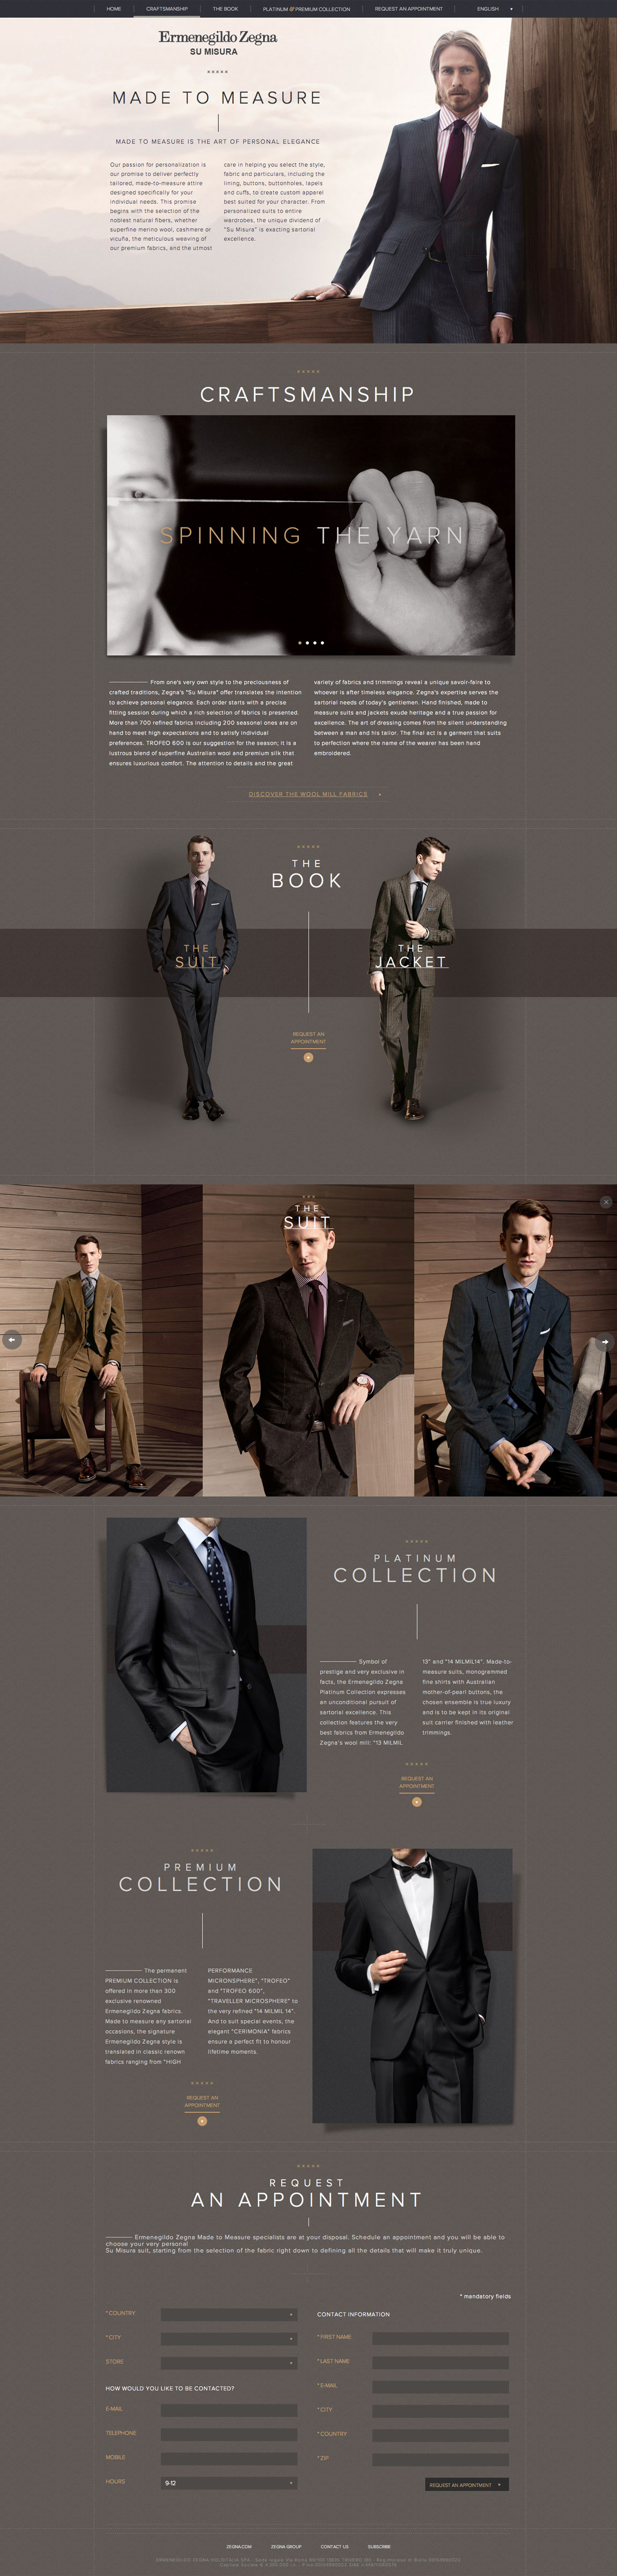 Su Misura – Ermenegildo Zegna Website Screenshot